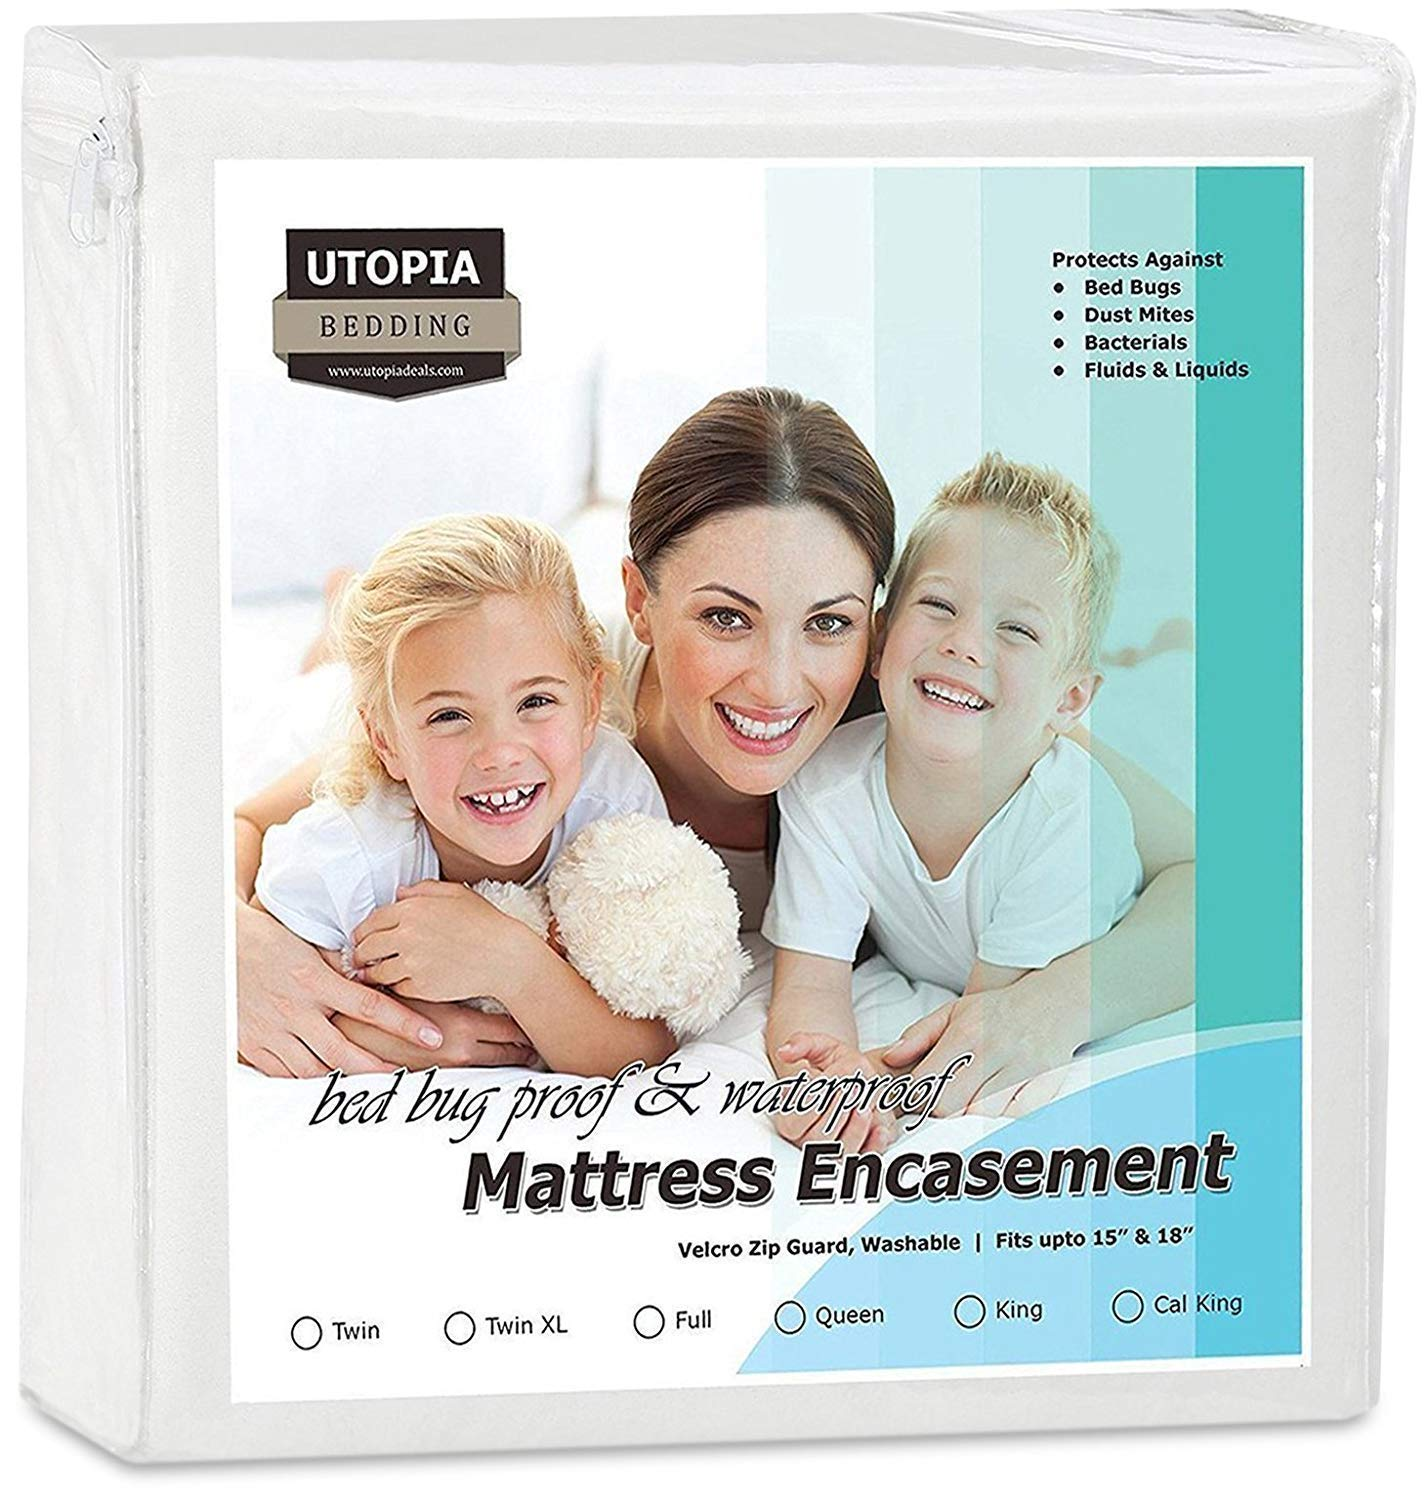 Utopia Bedding Zippered Mattress Encasement - Bed Bug Proof, Dust Mite Proof Mattress Cover - Waterproof Mattress Cover Protects from Insects and Fluids (Queen) by Utopia Bedding